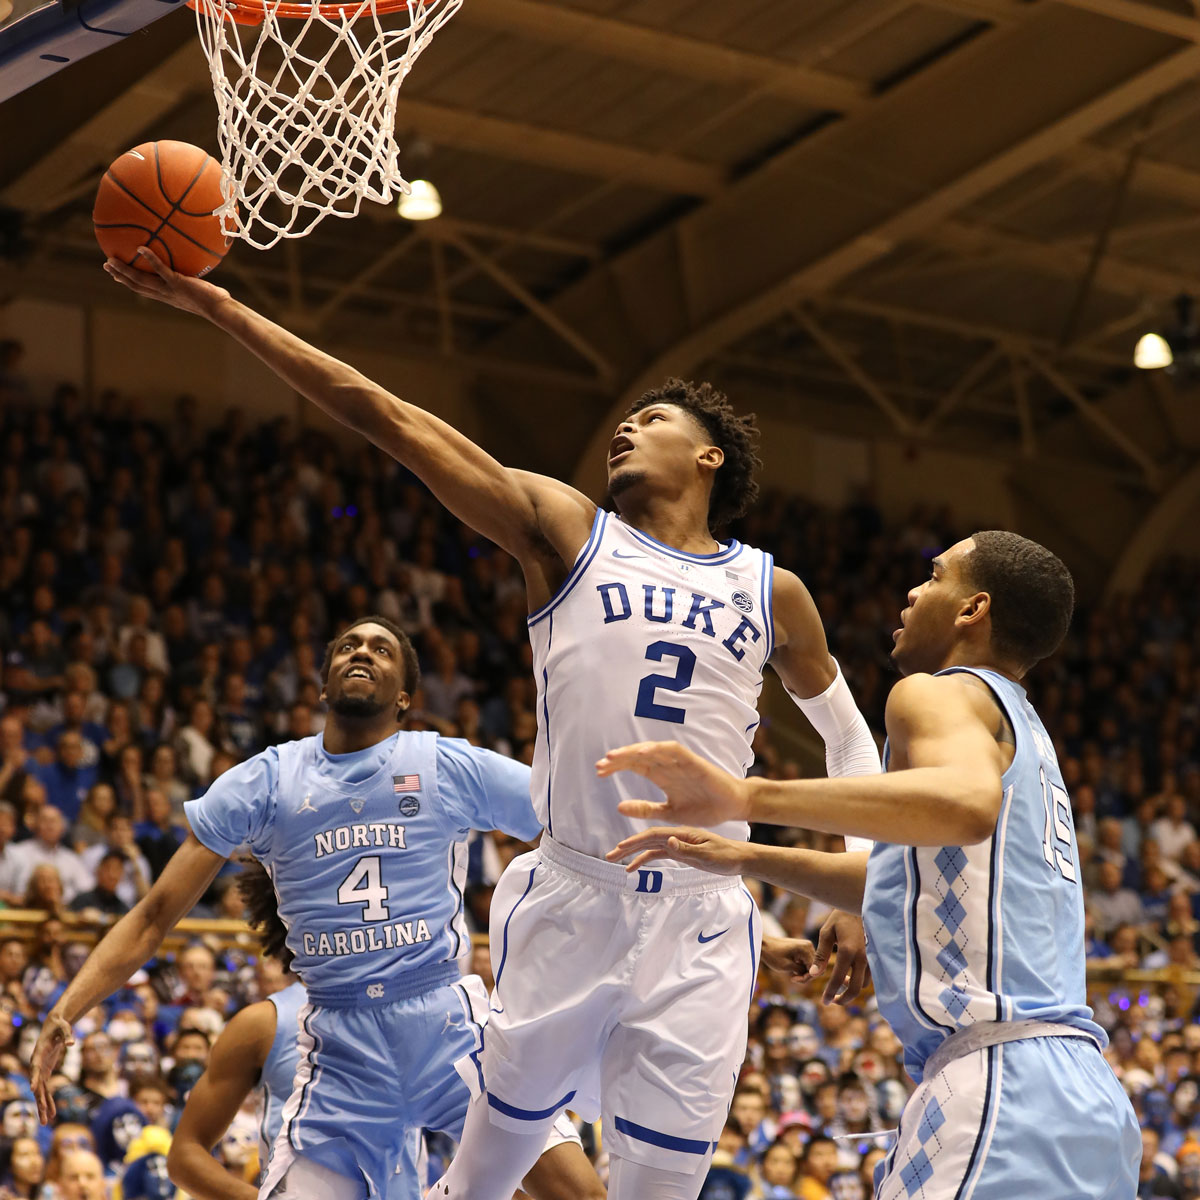 Cam Reddish #2 of the Duke Blue Devils drives to the basket against teammates Brandon Robinson #4 and Garrison Brooks #15 of the North Carolina Tar Heels during their game at Cameron Indoor Stadium on February 20, 2019 in Durham, North Carolina.